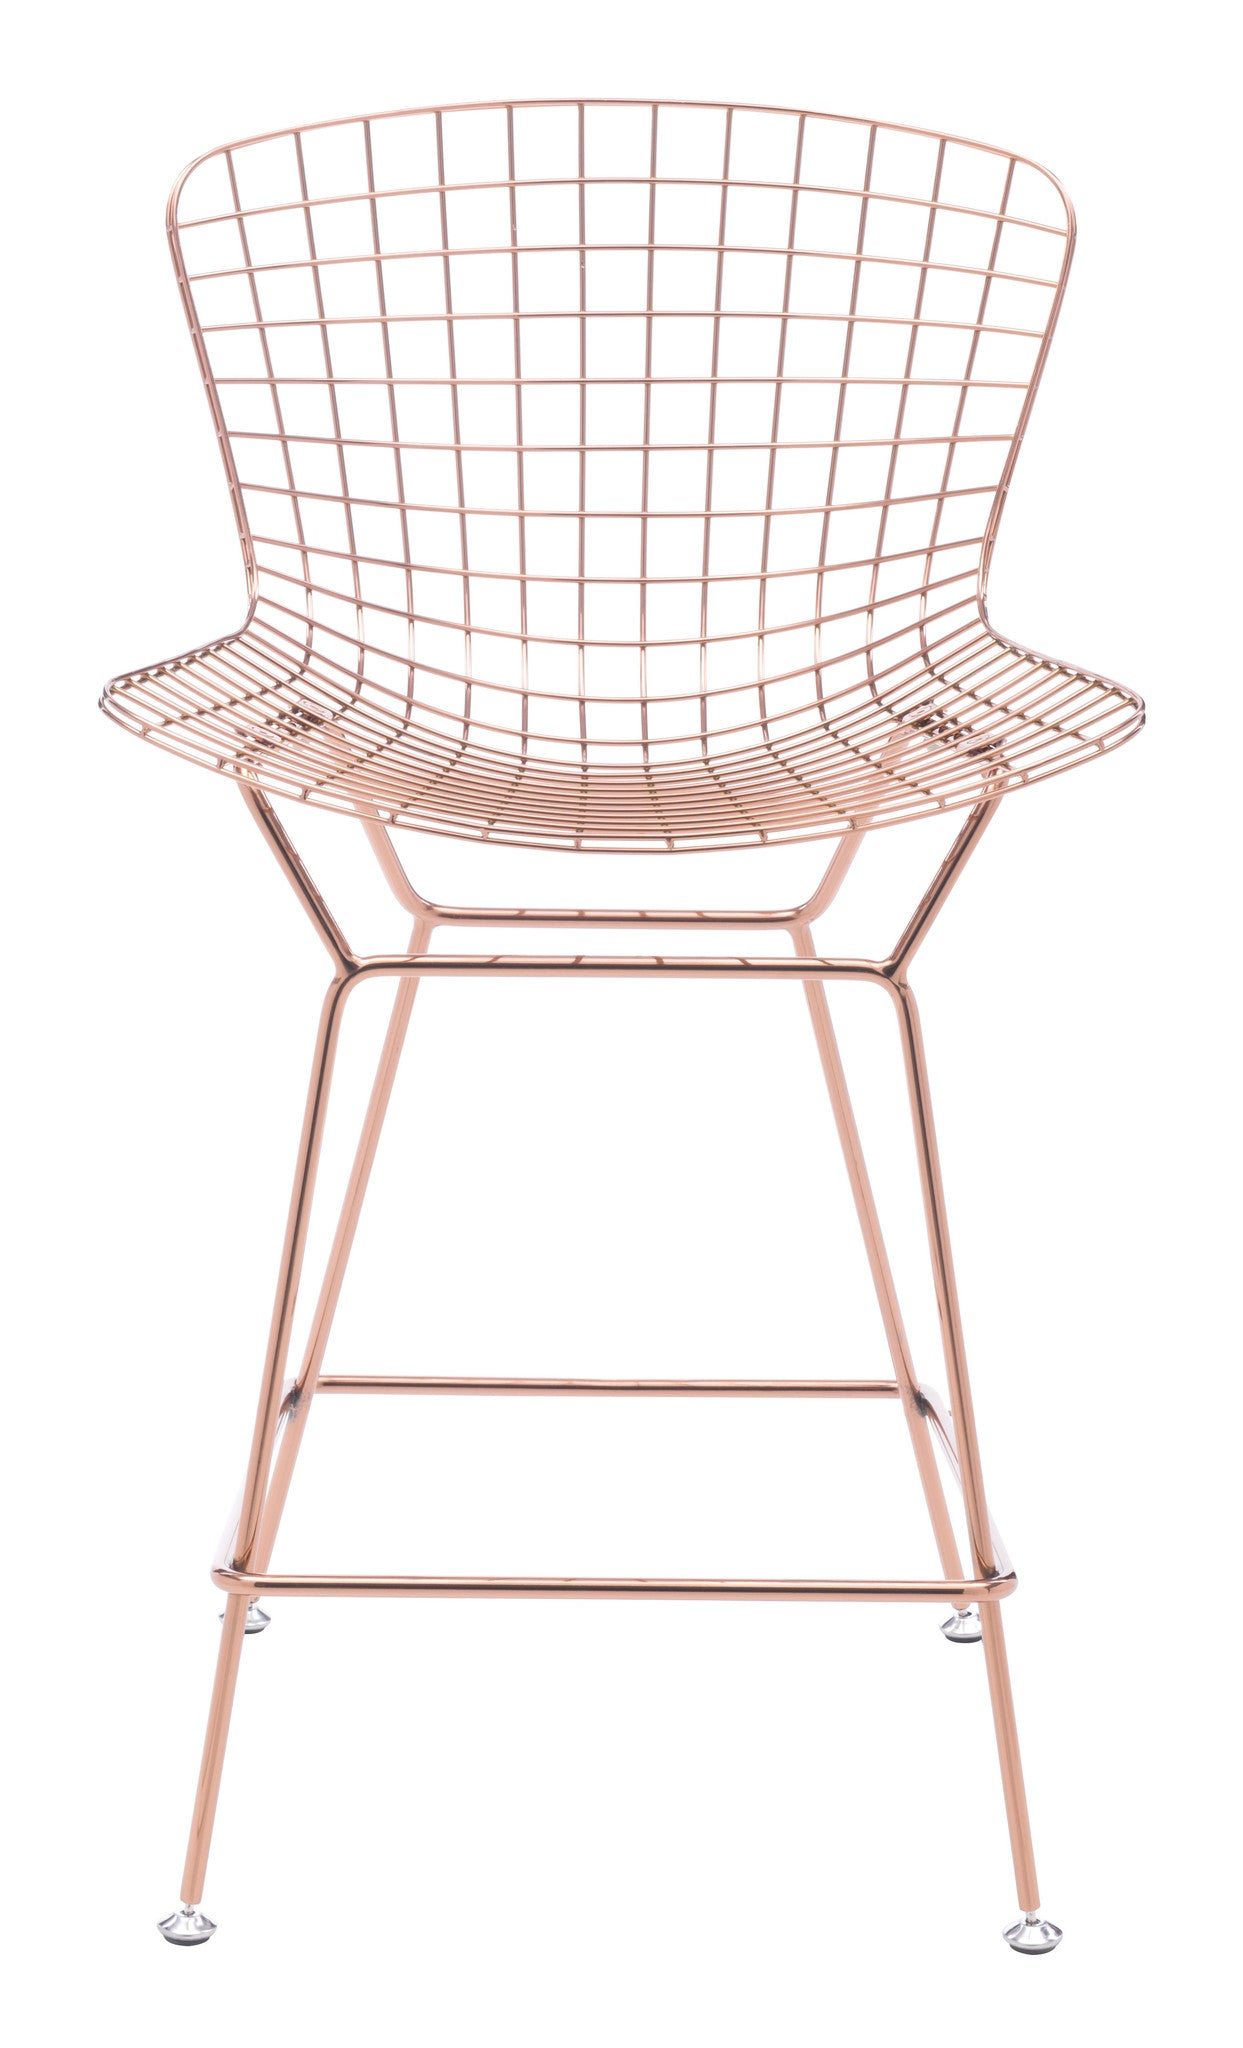 Rose Gold Wire Counter Chair- Set of 2 Icon Bar Stool House Plans on chairs icon, bar shelf icon, furniture icon, fireplace icon, books icon, snowflake icon, bar soap icon, leather icon, table icon, console icon,